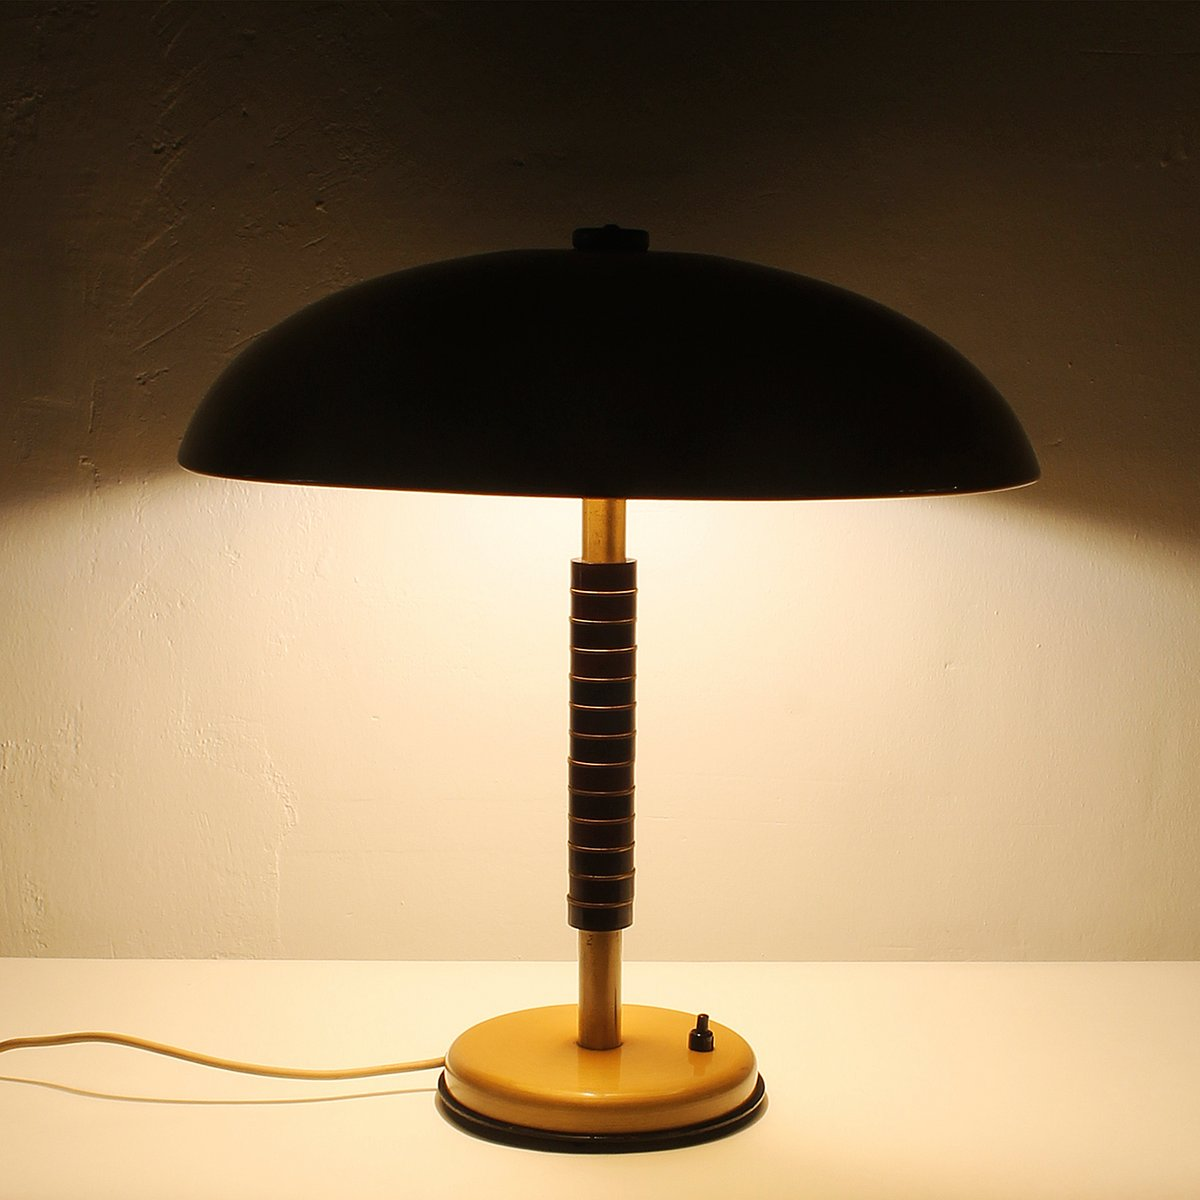 Vintage Brass & Wood Table Lamp, 1960s for sale at Pamono